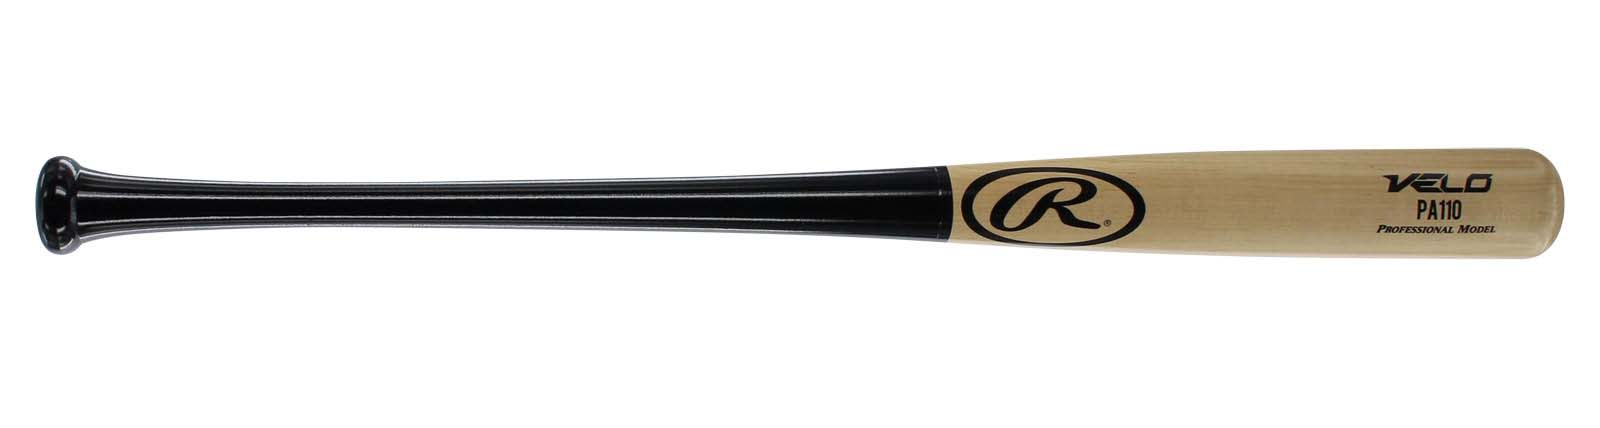 Rawlings VELO Maple Wood Bat PA110.jpg